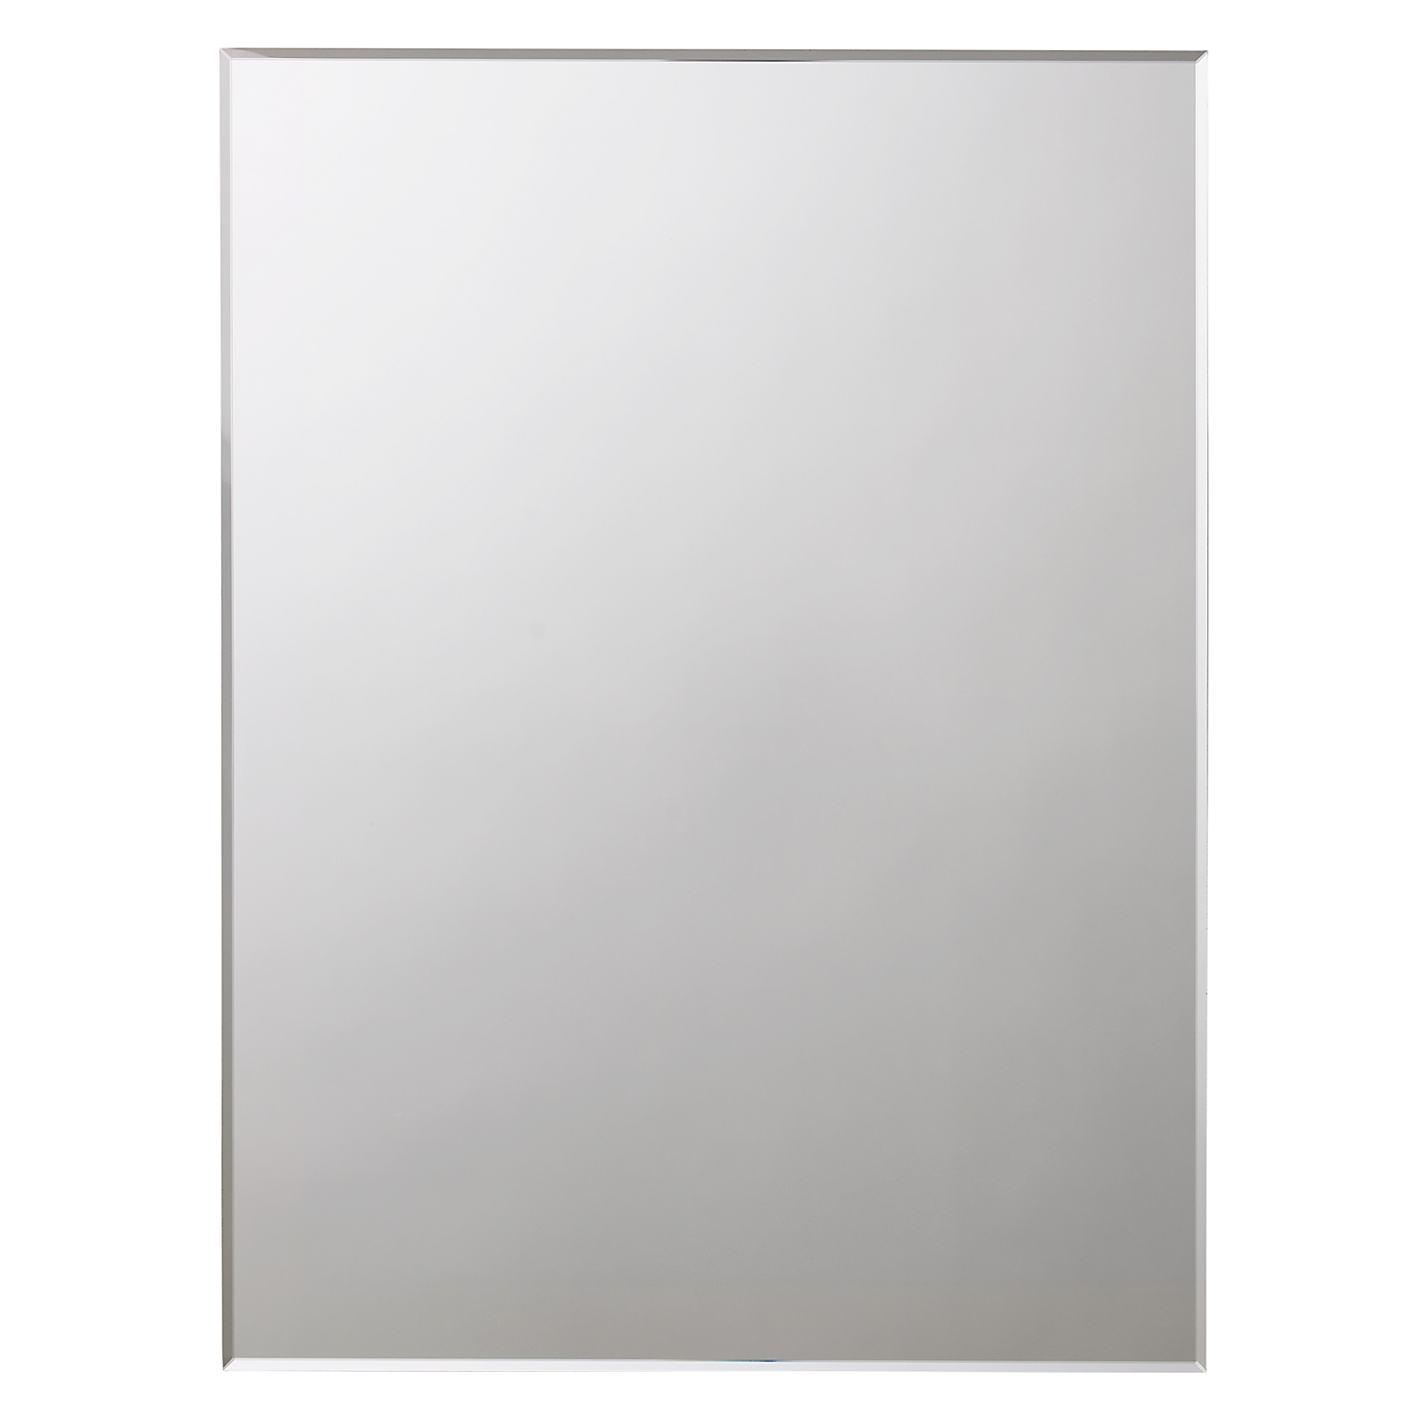 Bevelled Edge Bathroom Mirror – Harpsounds (Image 6 of 20)